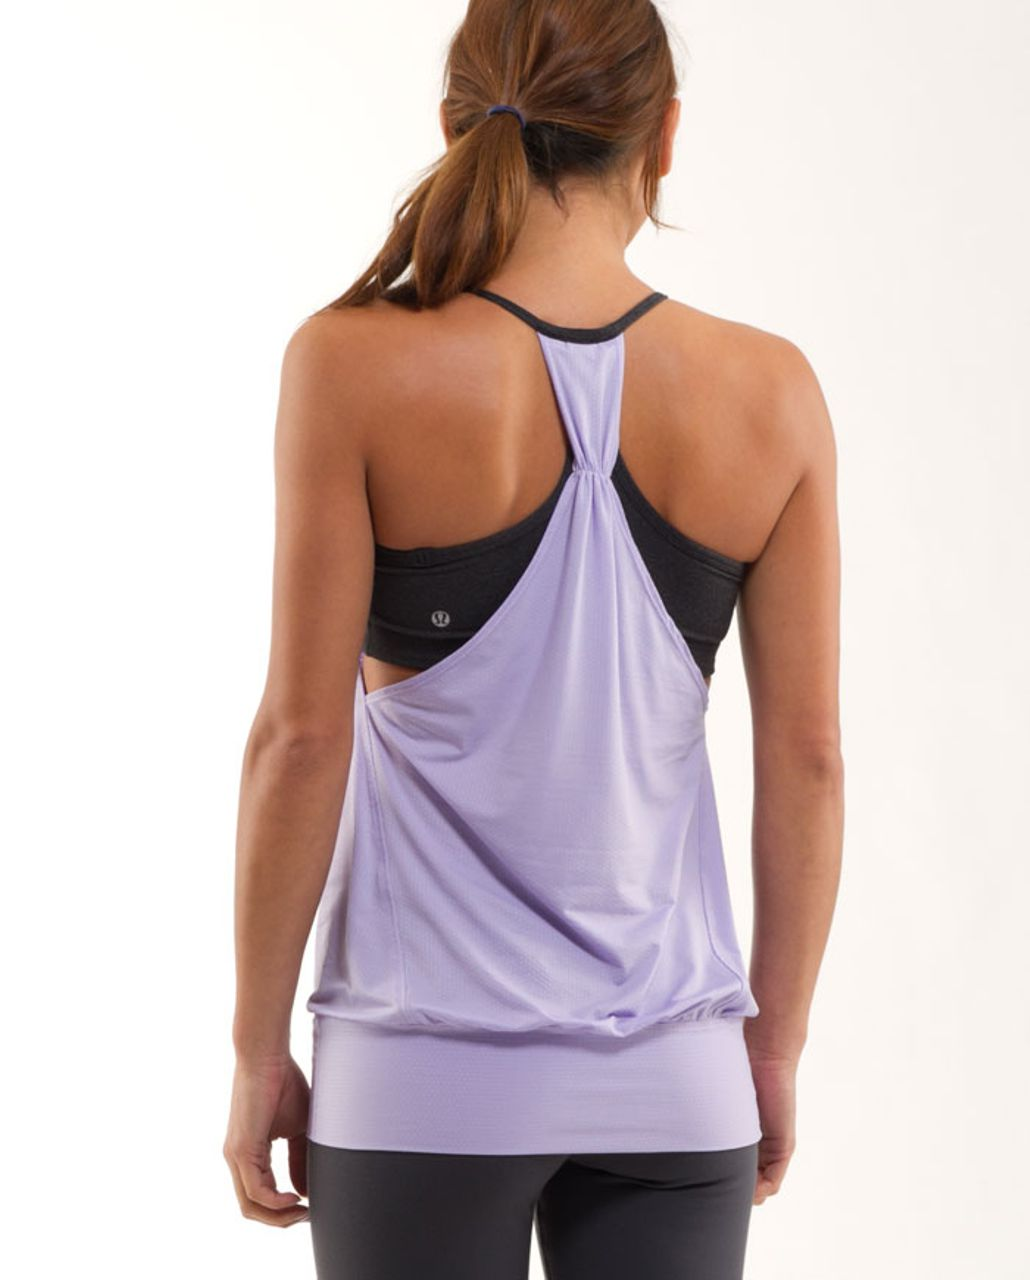 b3d51a5ed98 Lululemon No Limit Tank - Ivory / Classic Sport Grey / Lolo Purple - lulu  fanatics